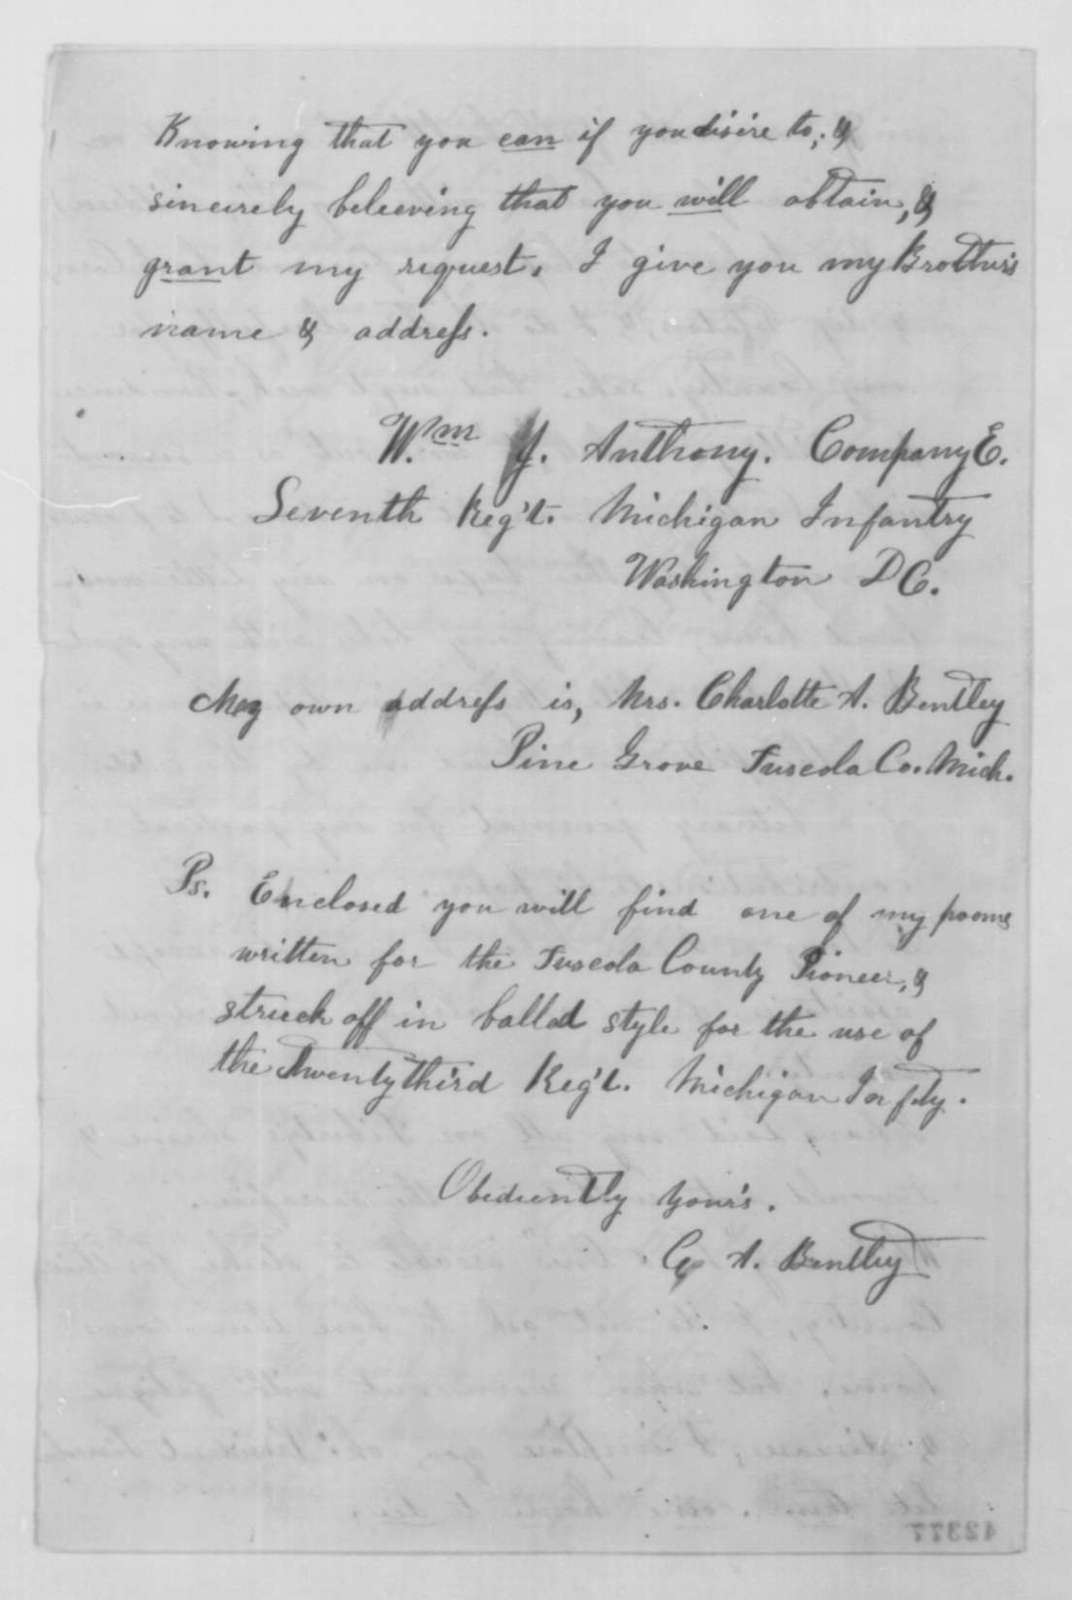 Charlotte A. Bentley to Abraham Lincoln, Monday, October 20, 1862  (Requests furlough for her brother)